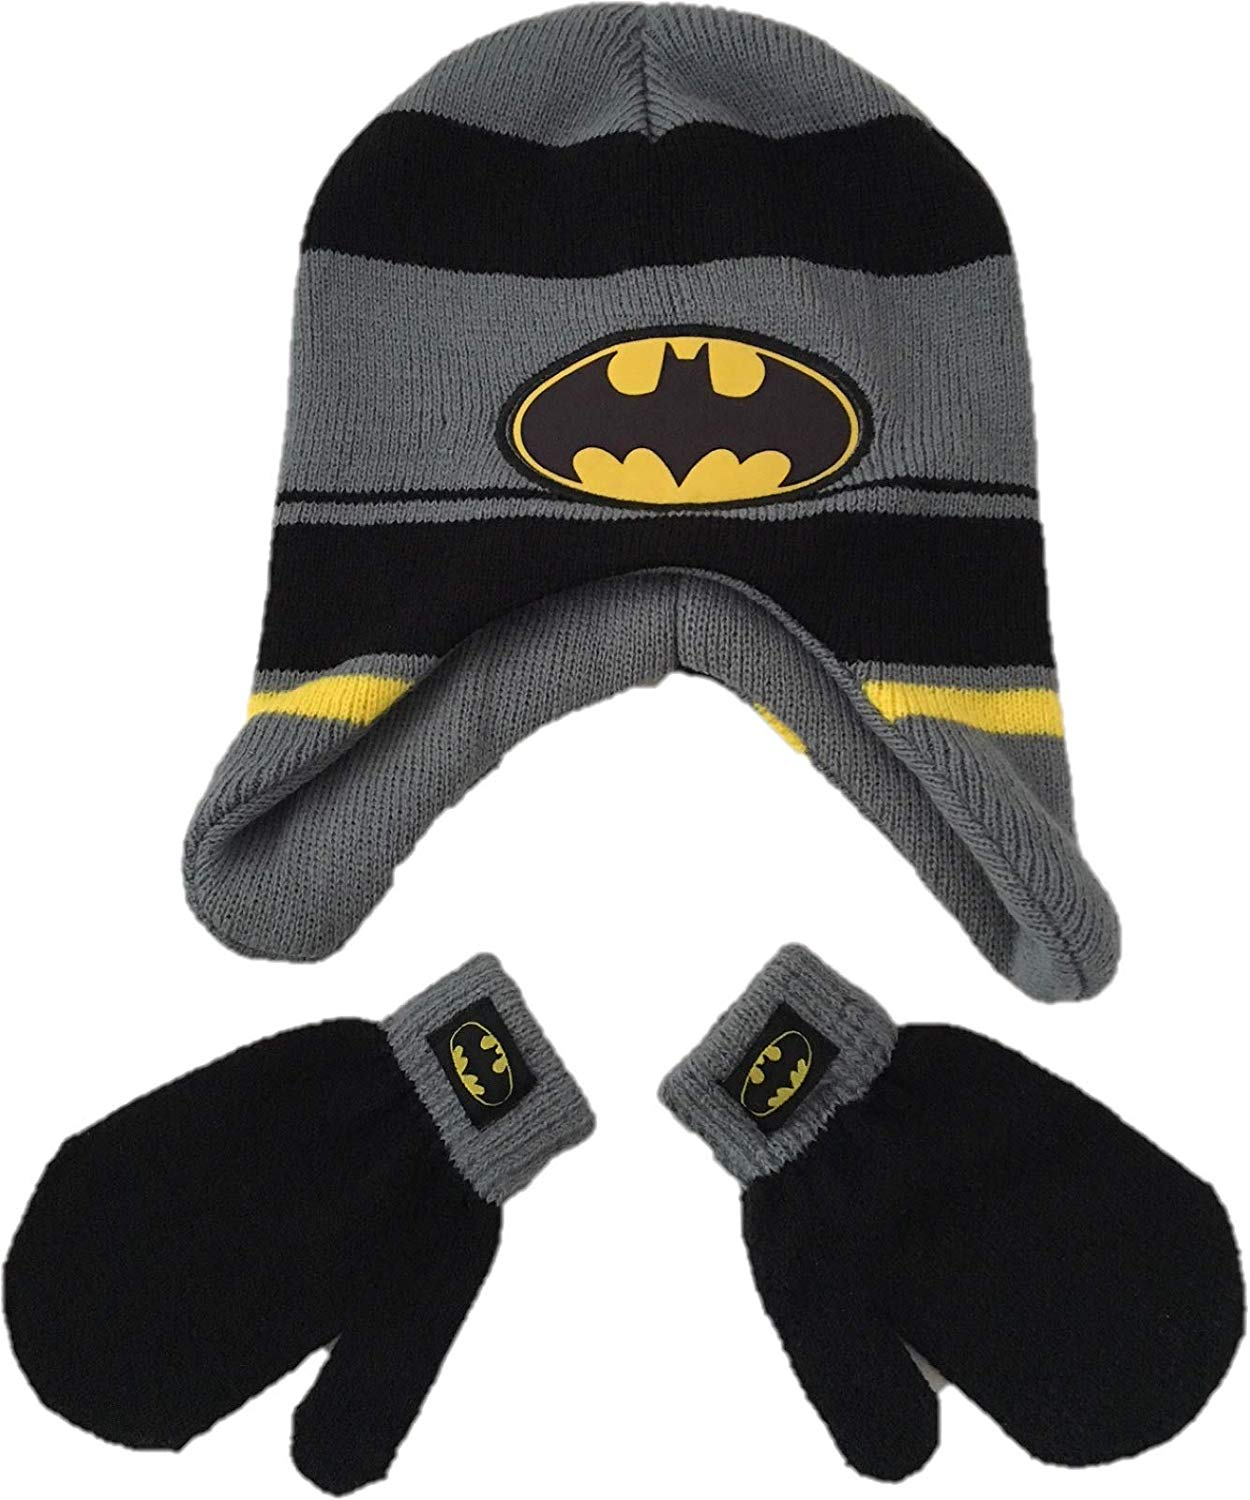 66c29b3ff76 Get Quotations · Arctic Trail Trading Batman Earflaps Winter Knit Hat and  Mitten for Kids